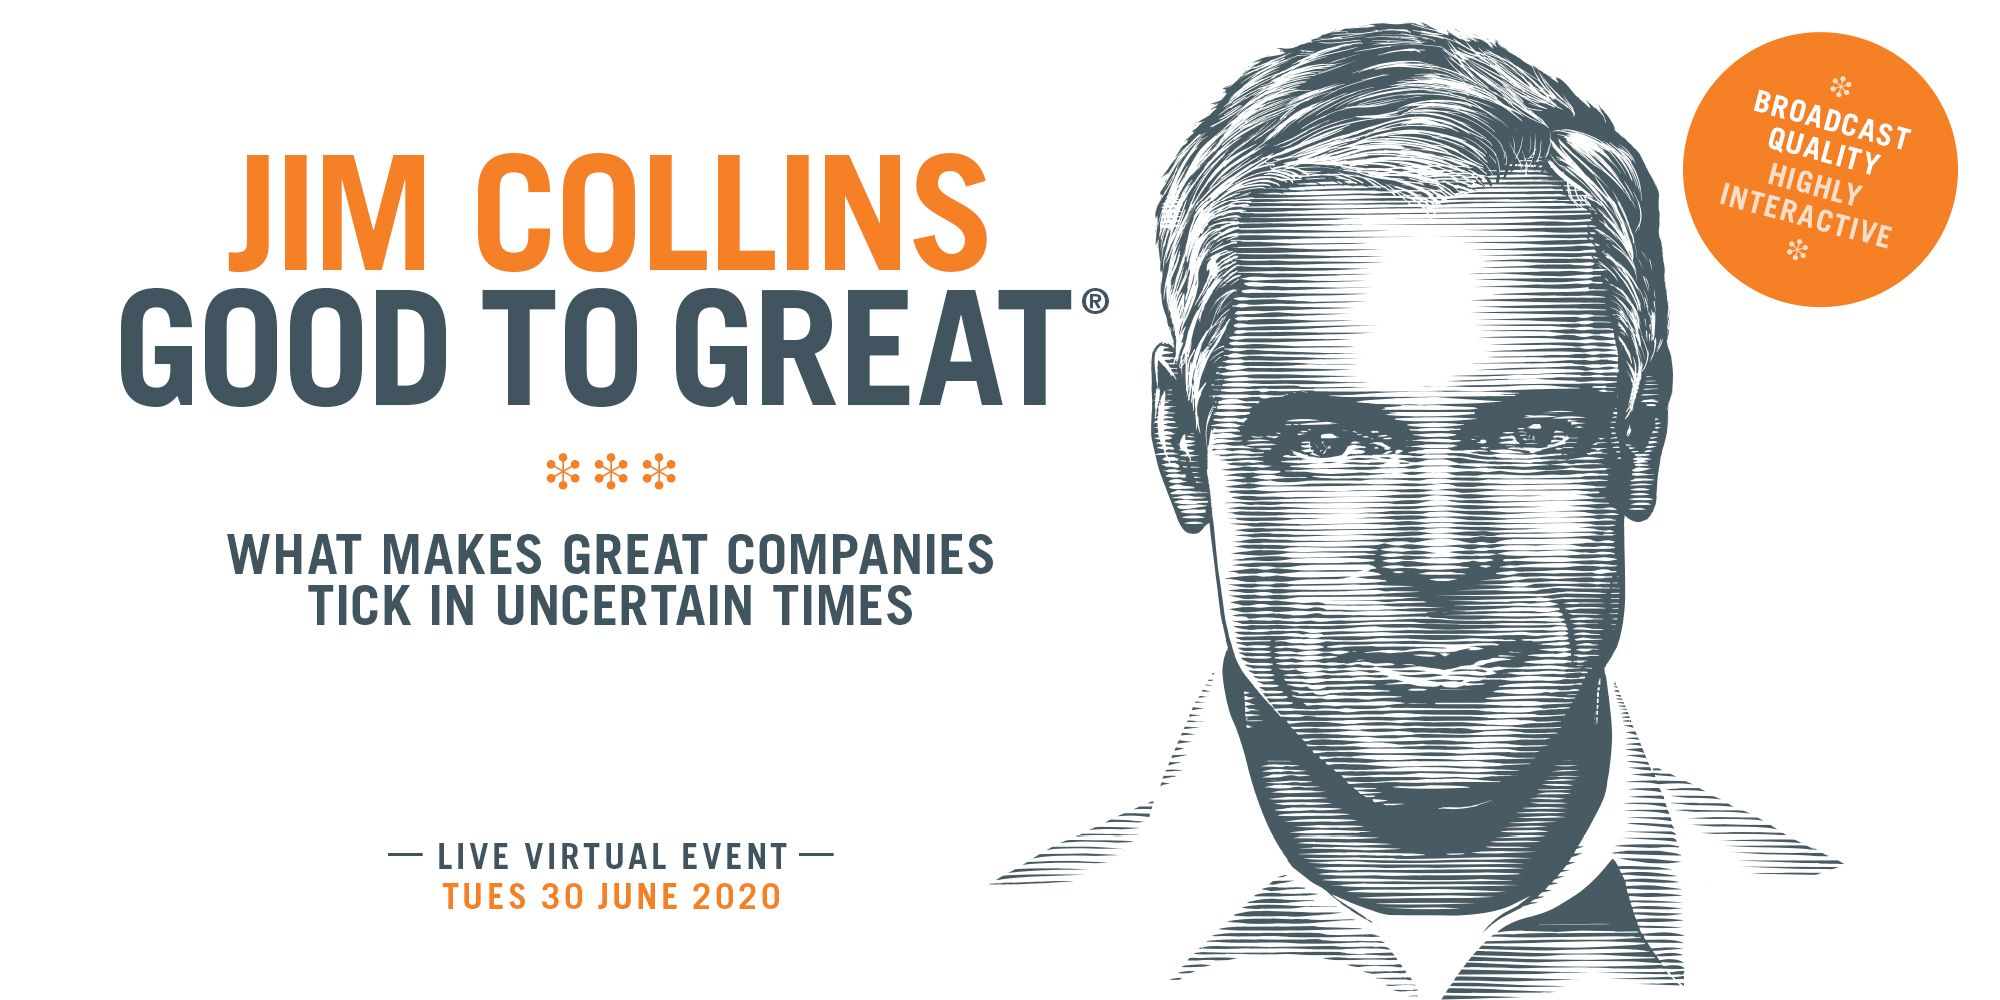 JIM COLLINS GOOD TO GREAT